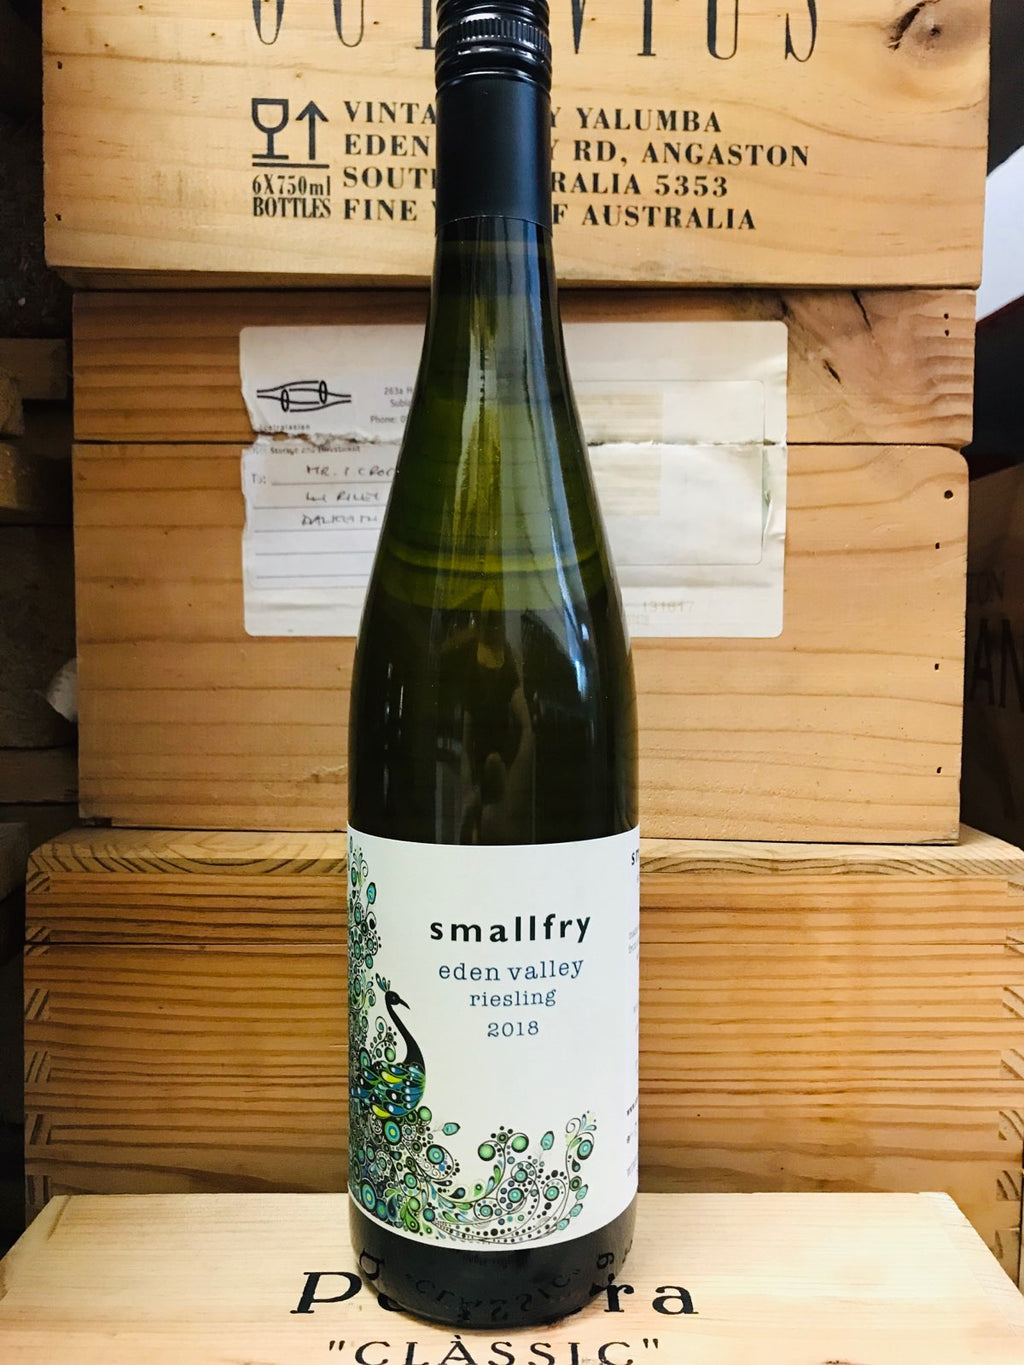 Smallfry Eden Valley Riesling biodynamic